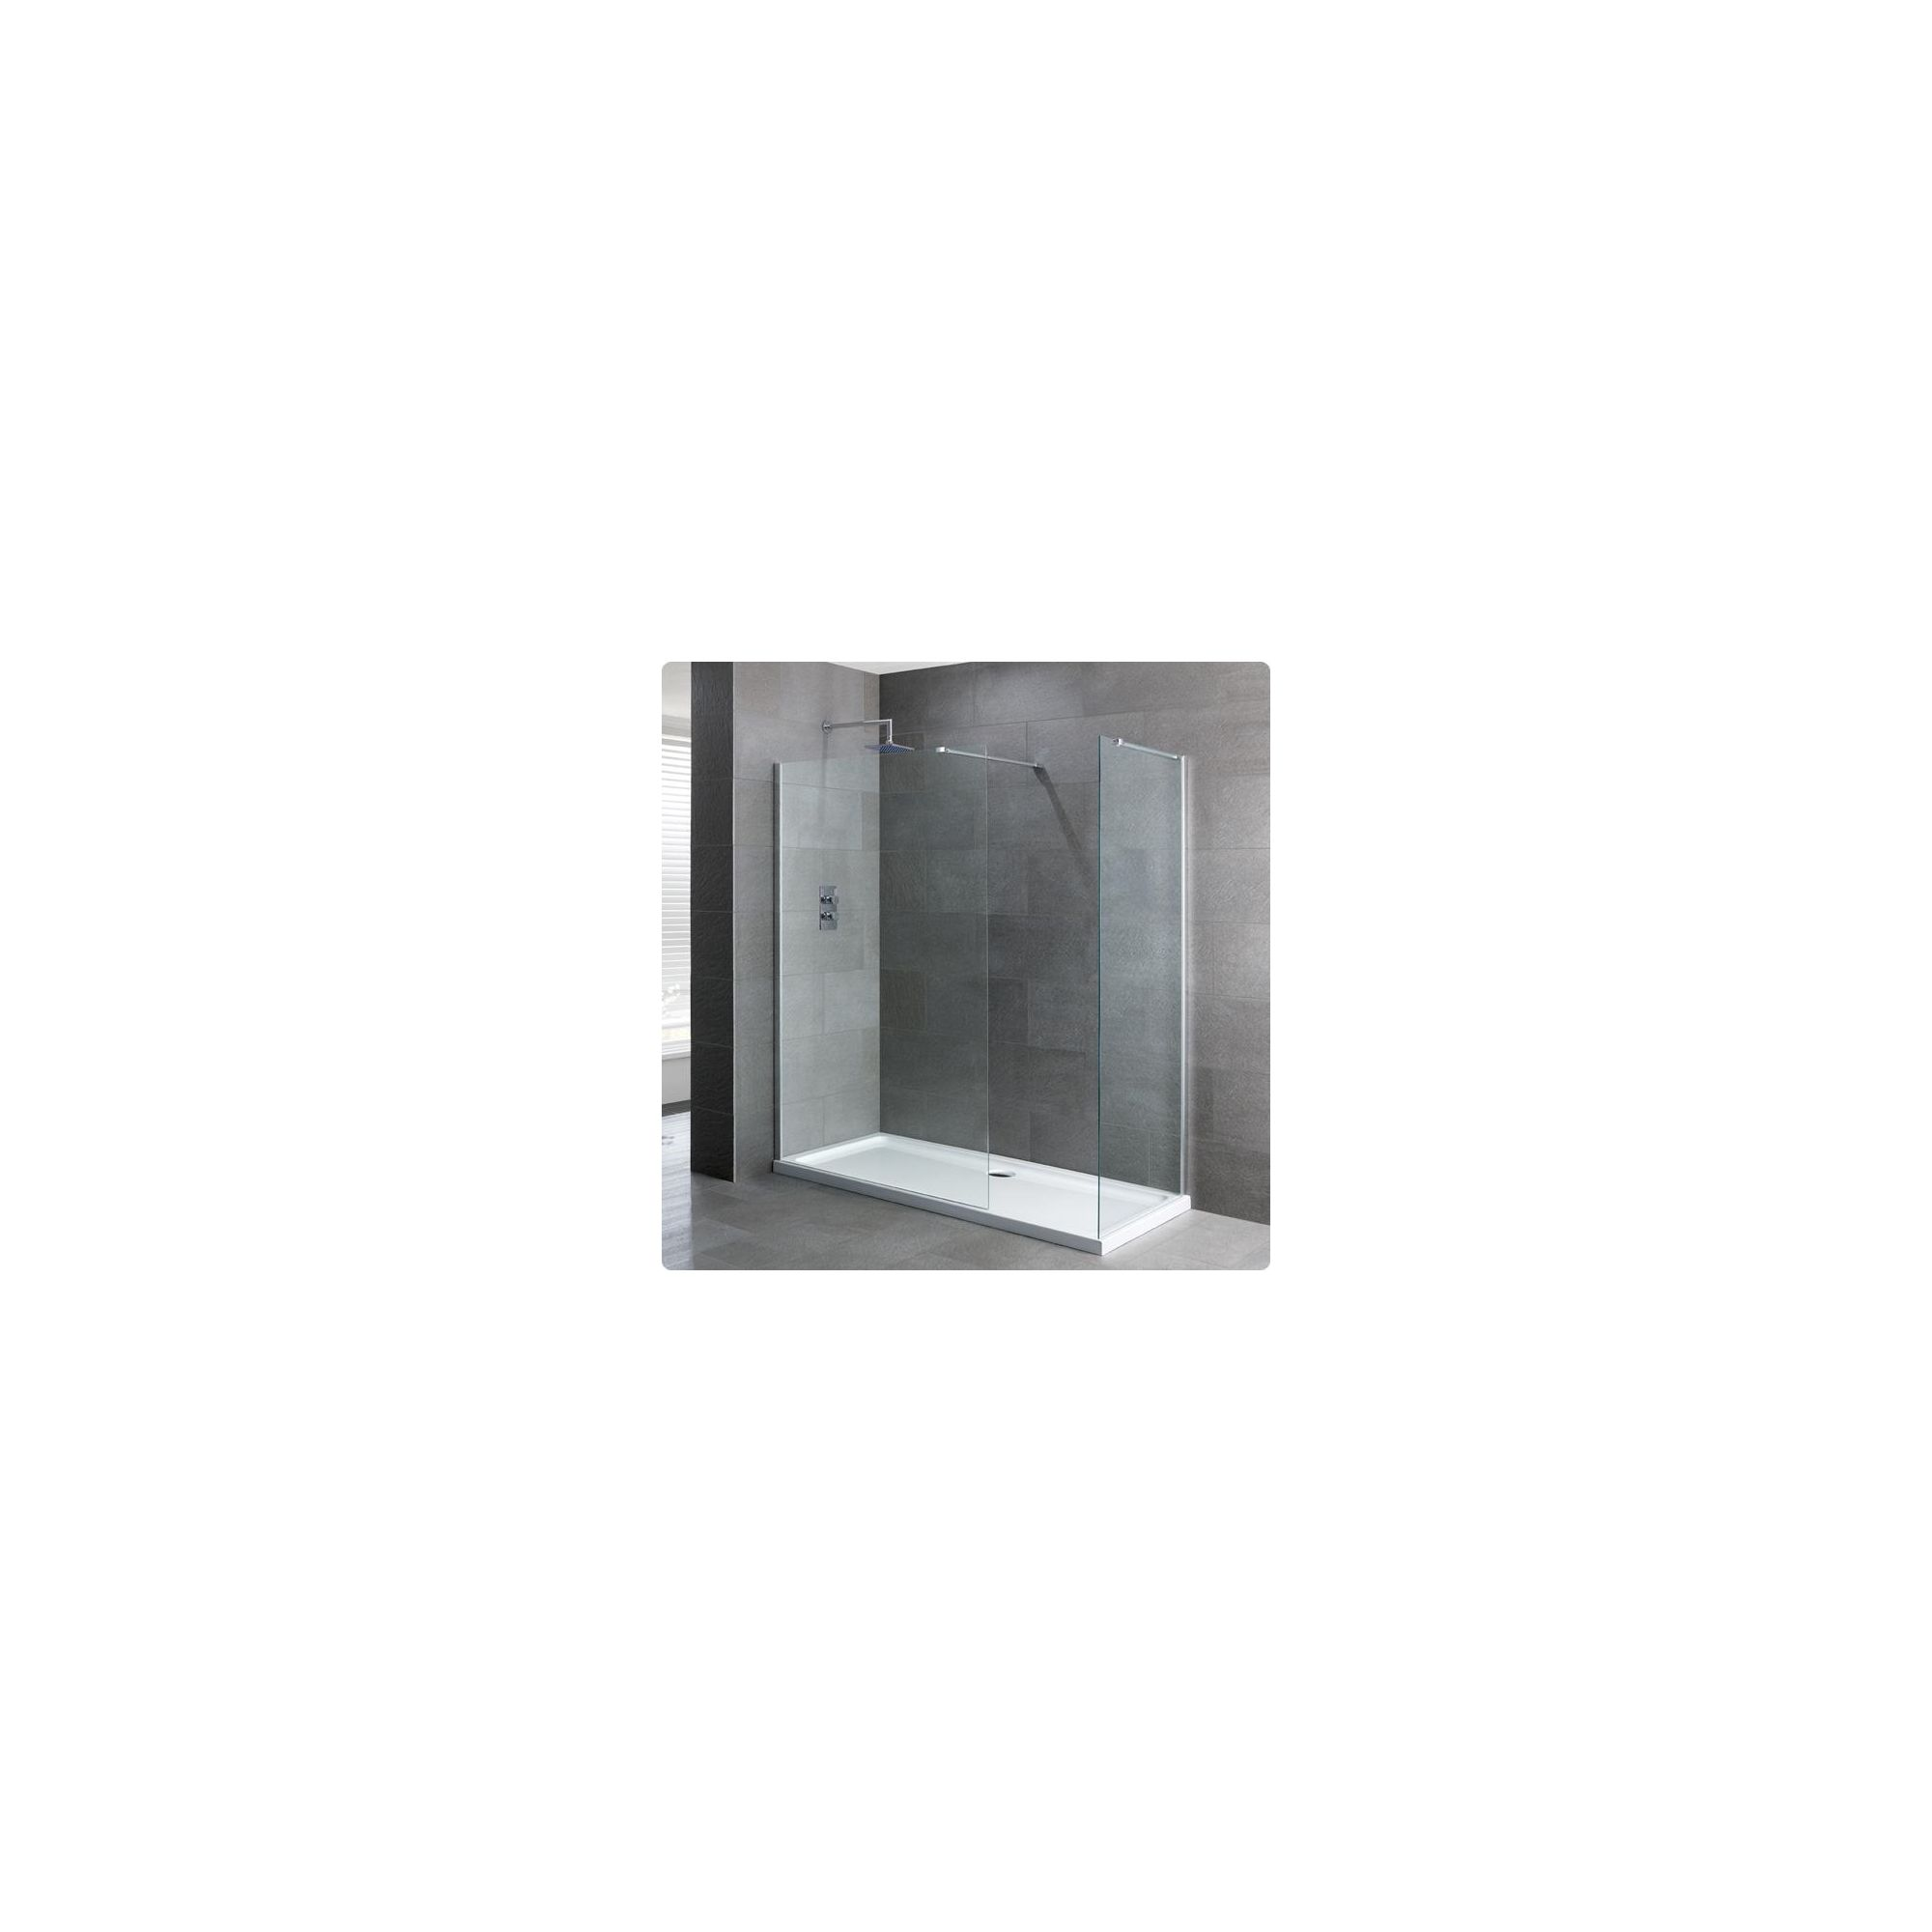 Duchy Select Silver Walk-In Shower Enclosure 1700mm x 900mm, Standard Tray, 6mm Glass at Tesco Direct